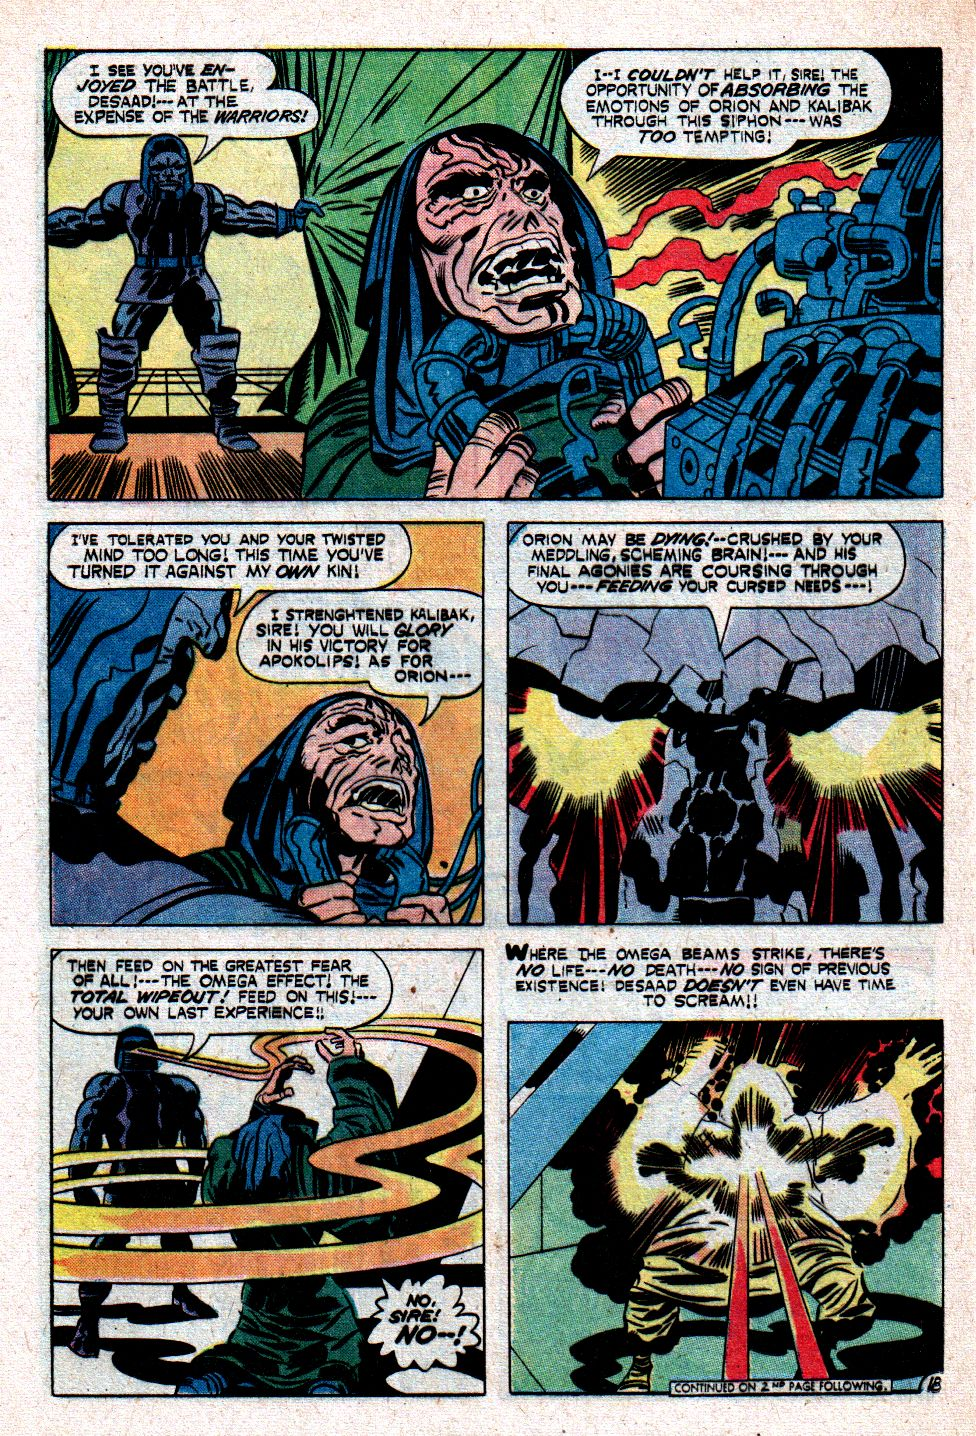 Papa Wolf: Yes, believe it or not. Darkseid had once disintegrated ...